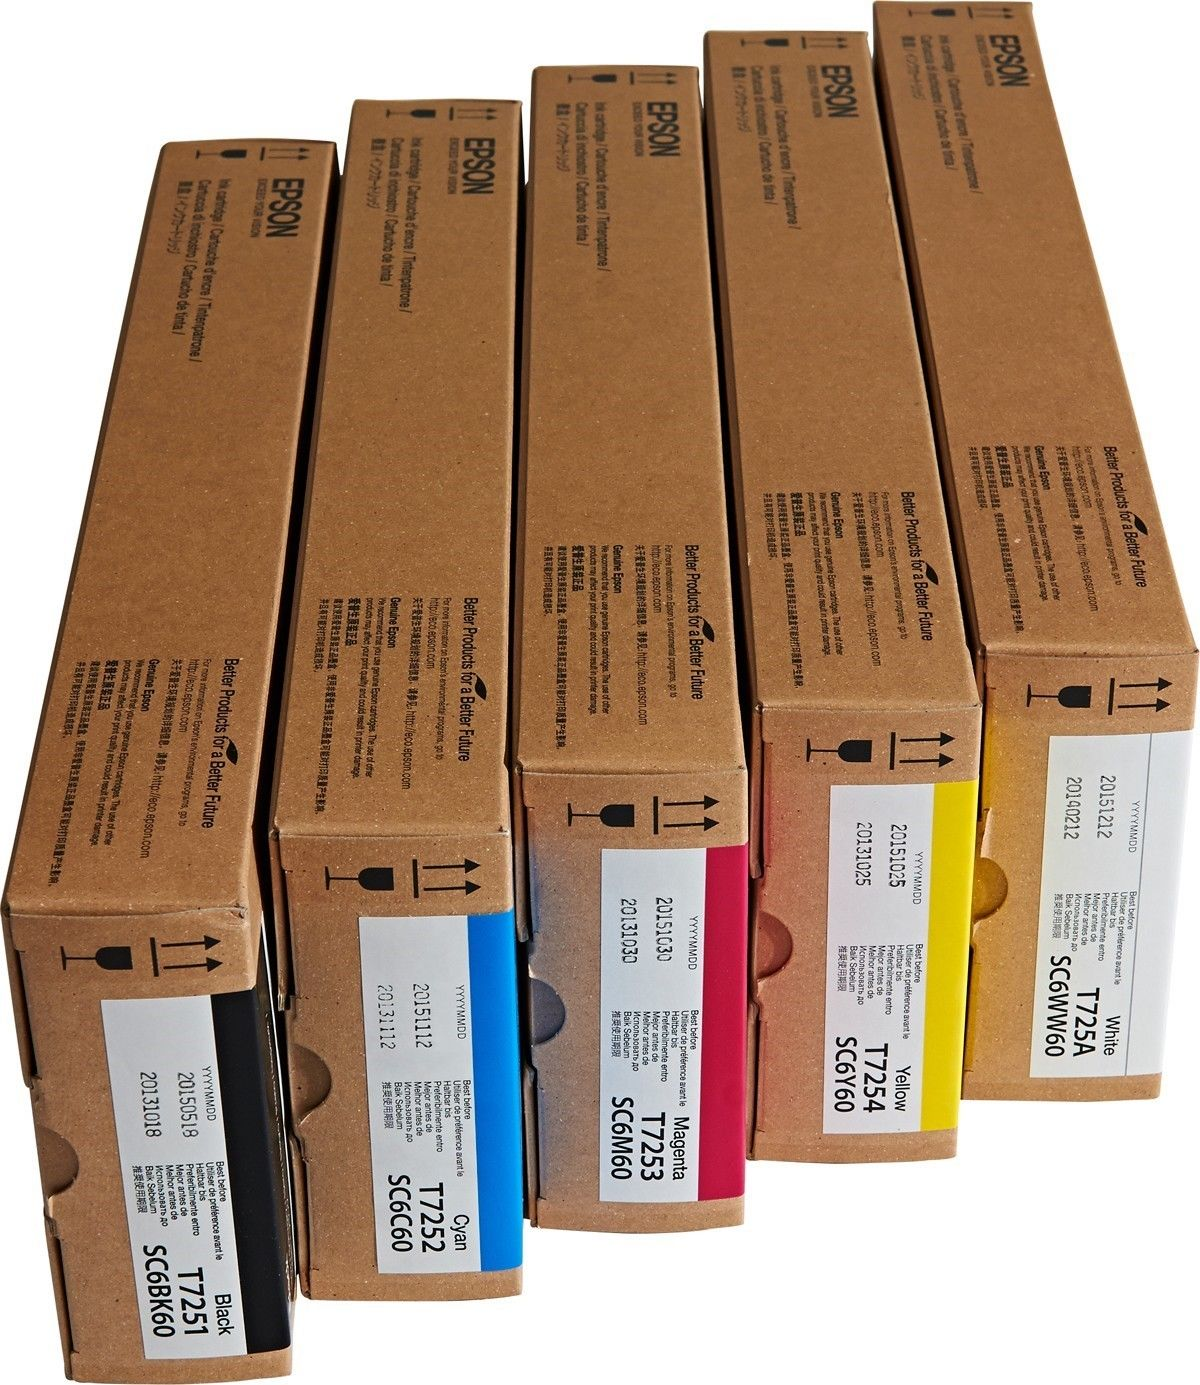 C13T725200 EPSON ULTRACHROME DG CYANO